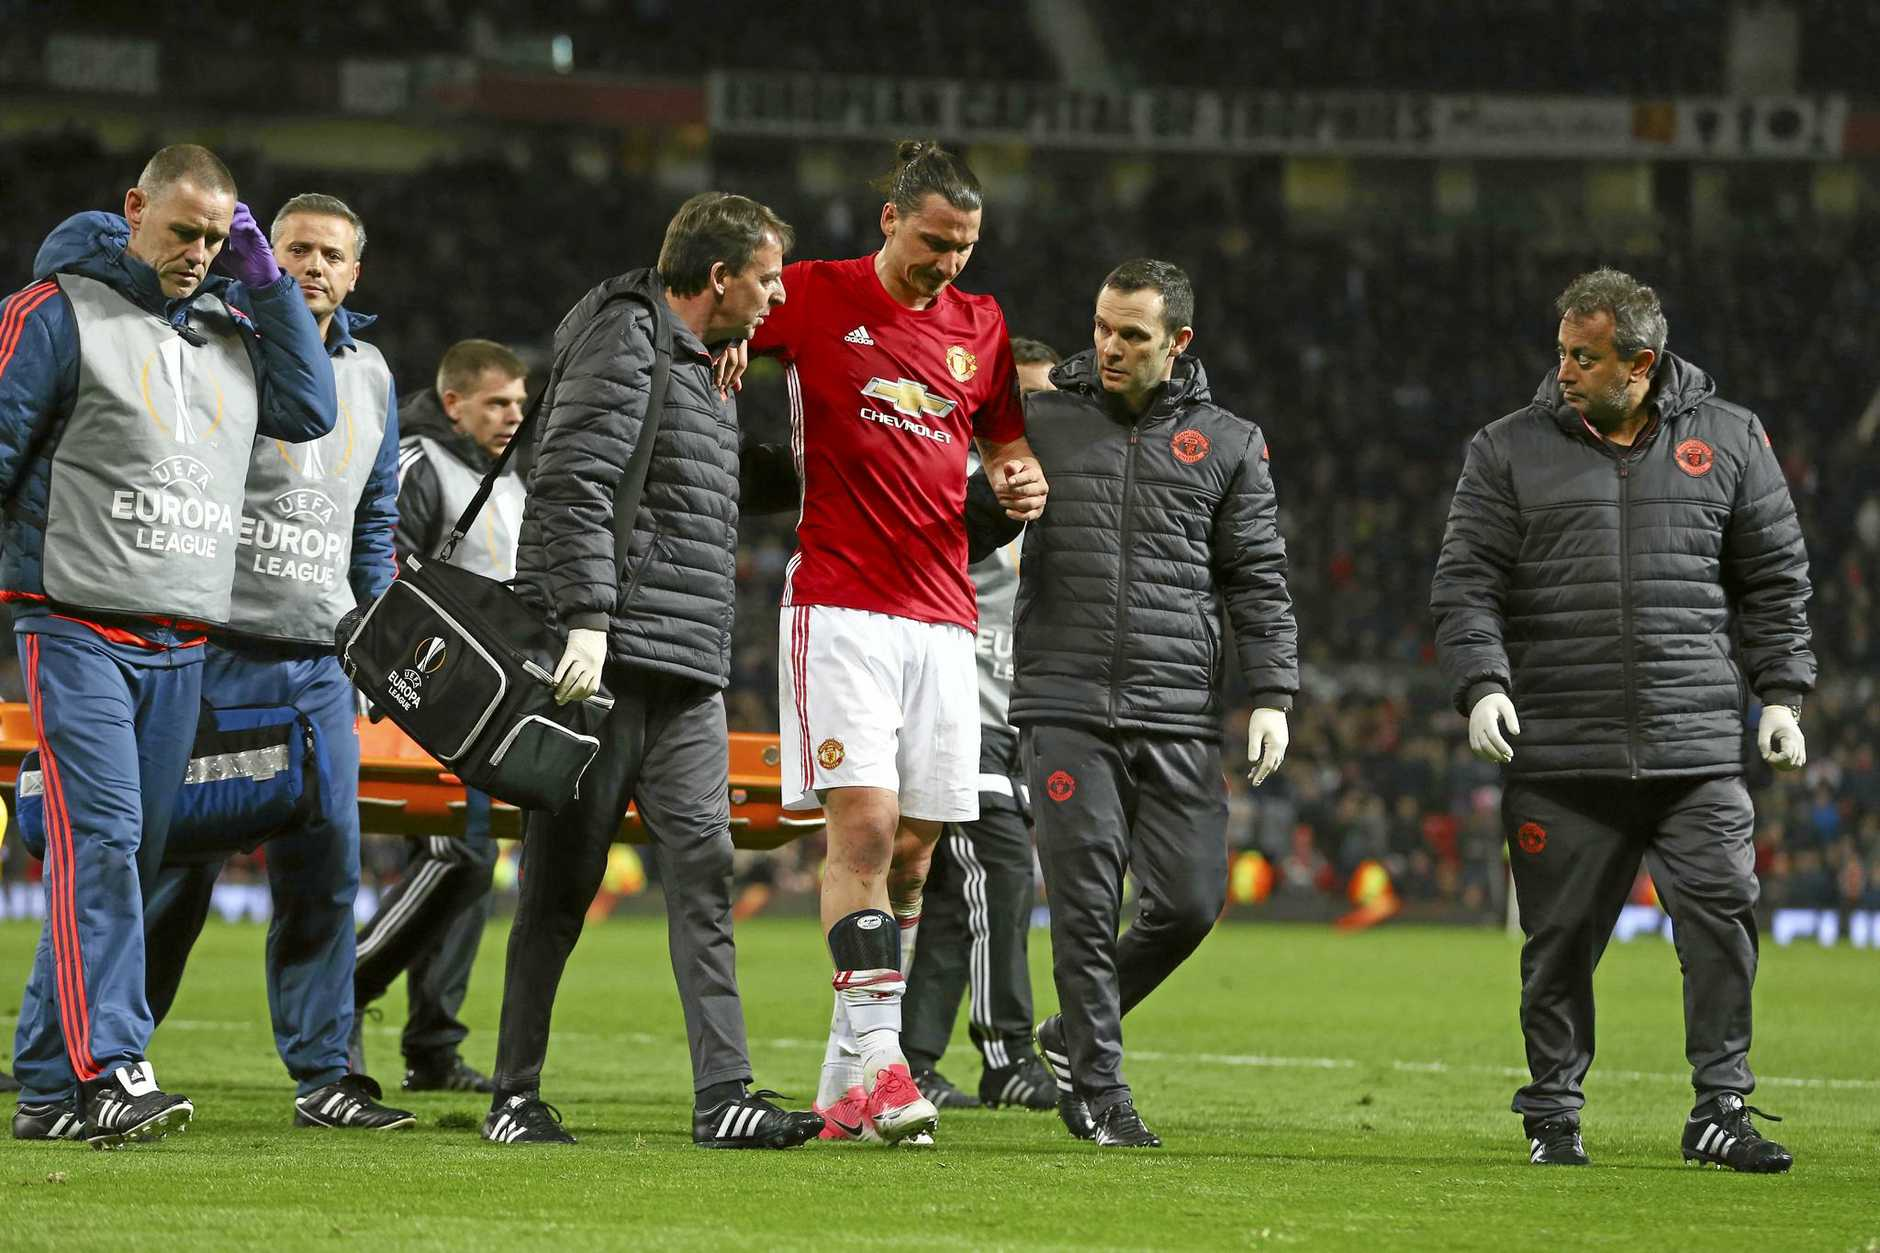 Manchester United's Zlatan Ibrahimovic, center, leaves the field with an injury during the Europa League quarterfinal second leg soccer match between Manchester United and Anderlecht at Old Trafford stadium, in Manchester, England, Thursday, April 20, 2017. (AP Photo/Dave Thompson)